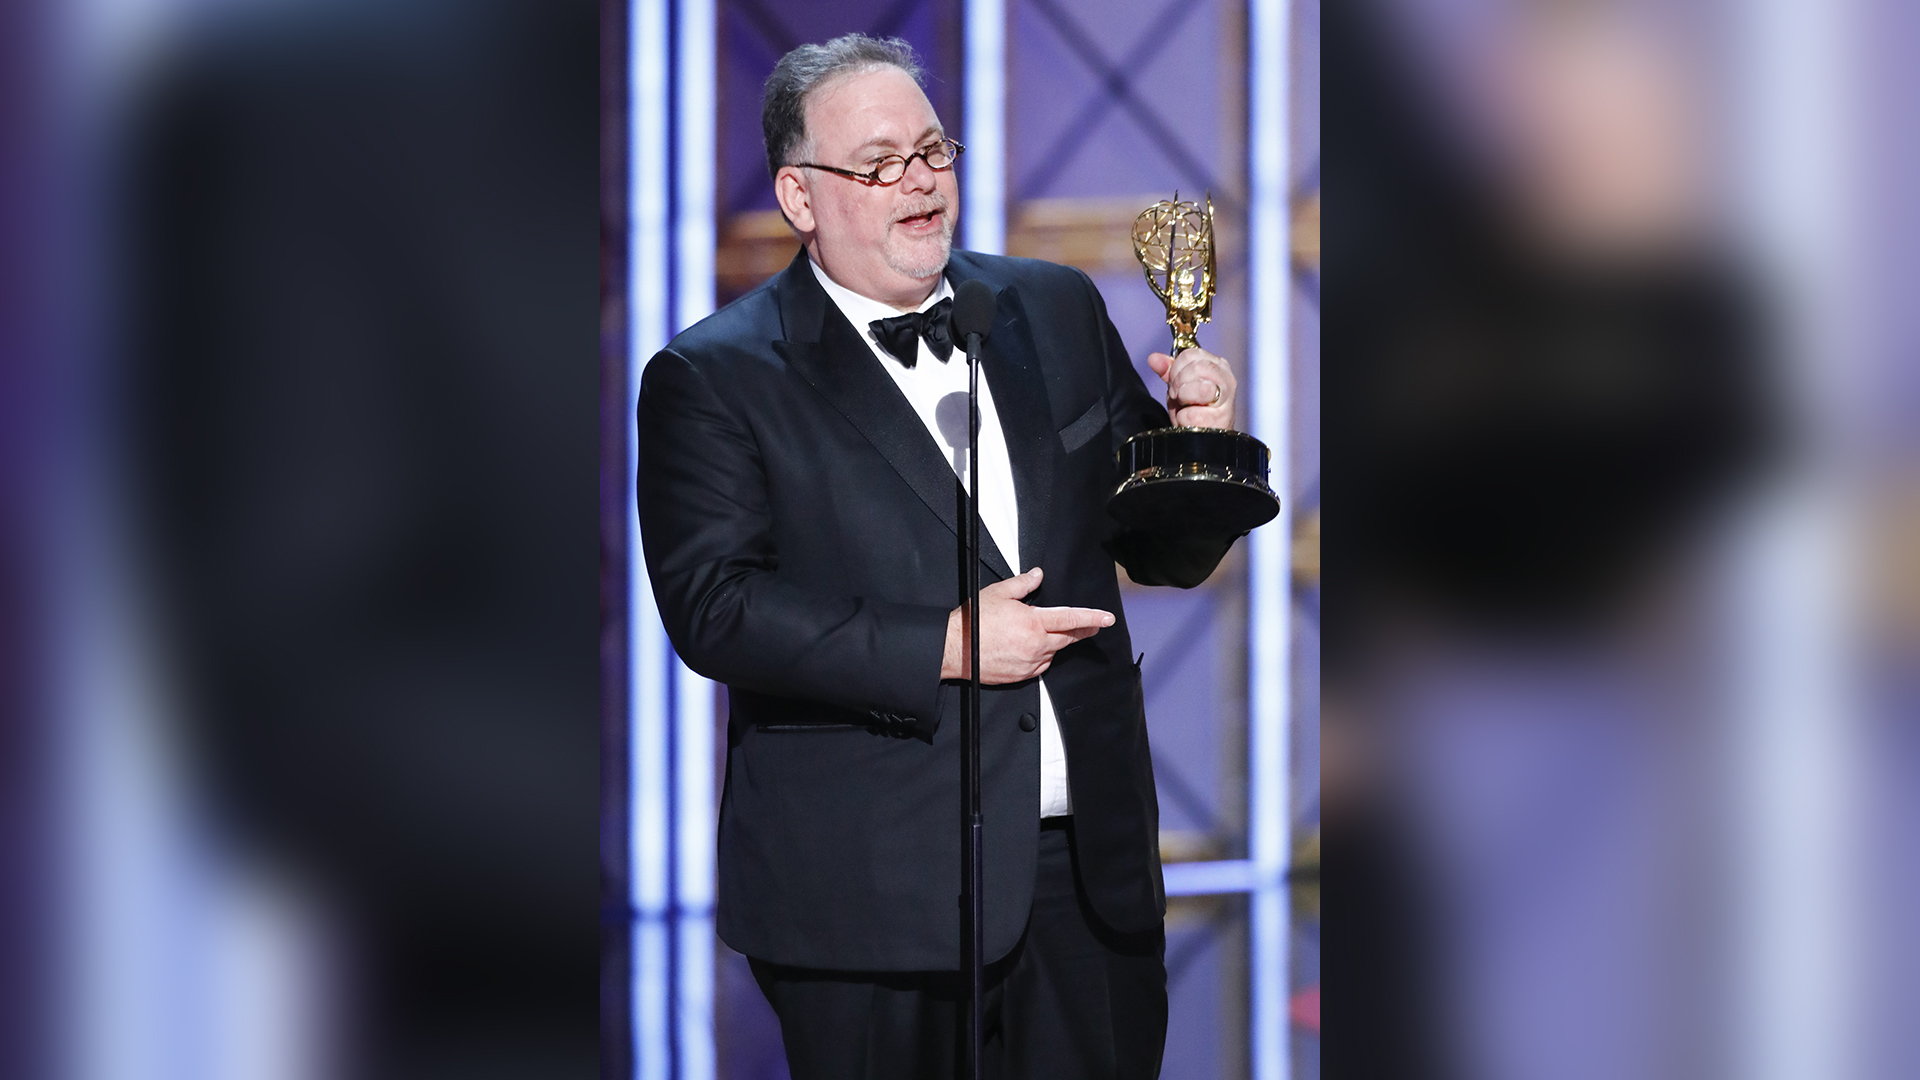 Bruce Miller wins Outstanding Writing for a Drama Series at The 69th Emmy Awards.